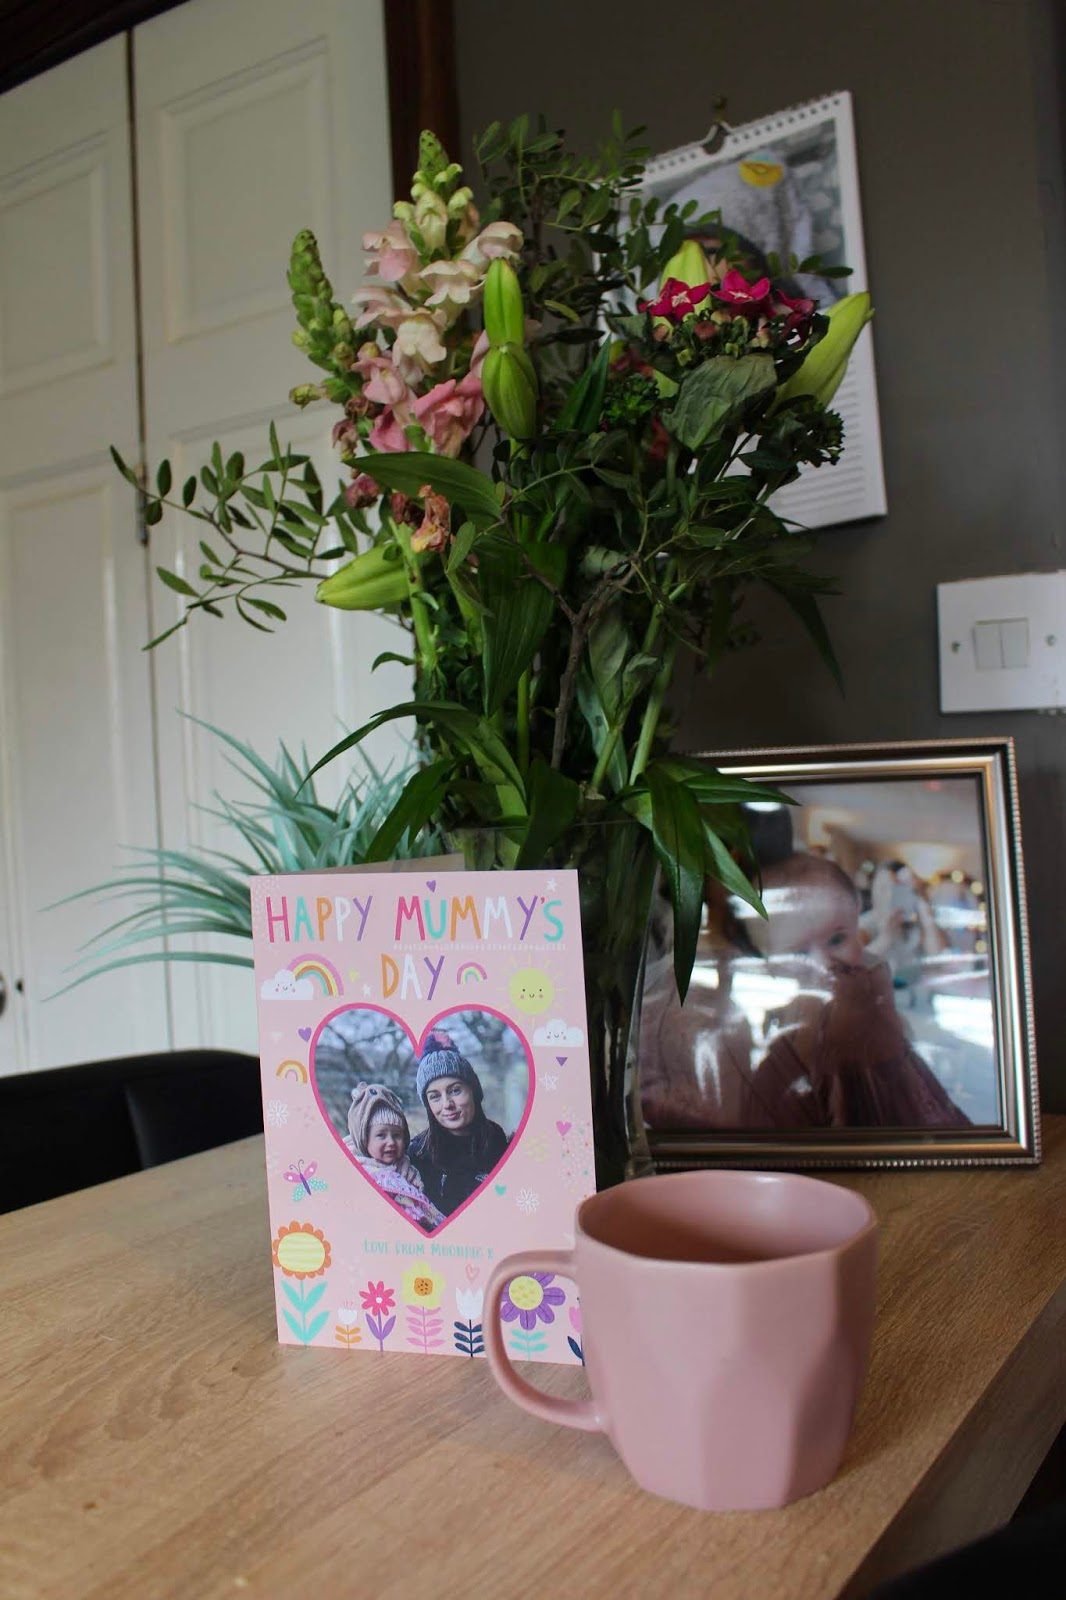 Mothers day card and flowers from Moonpig.